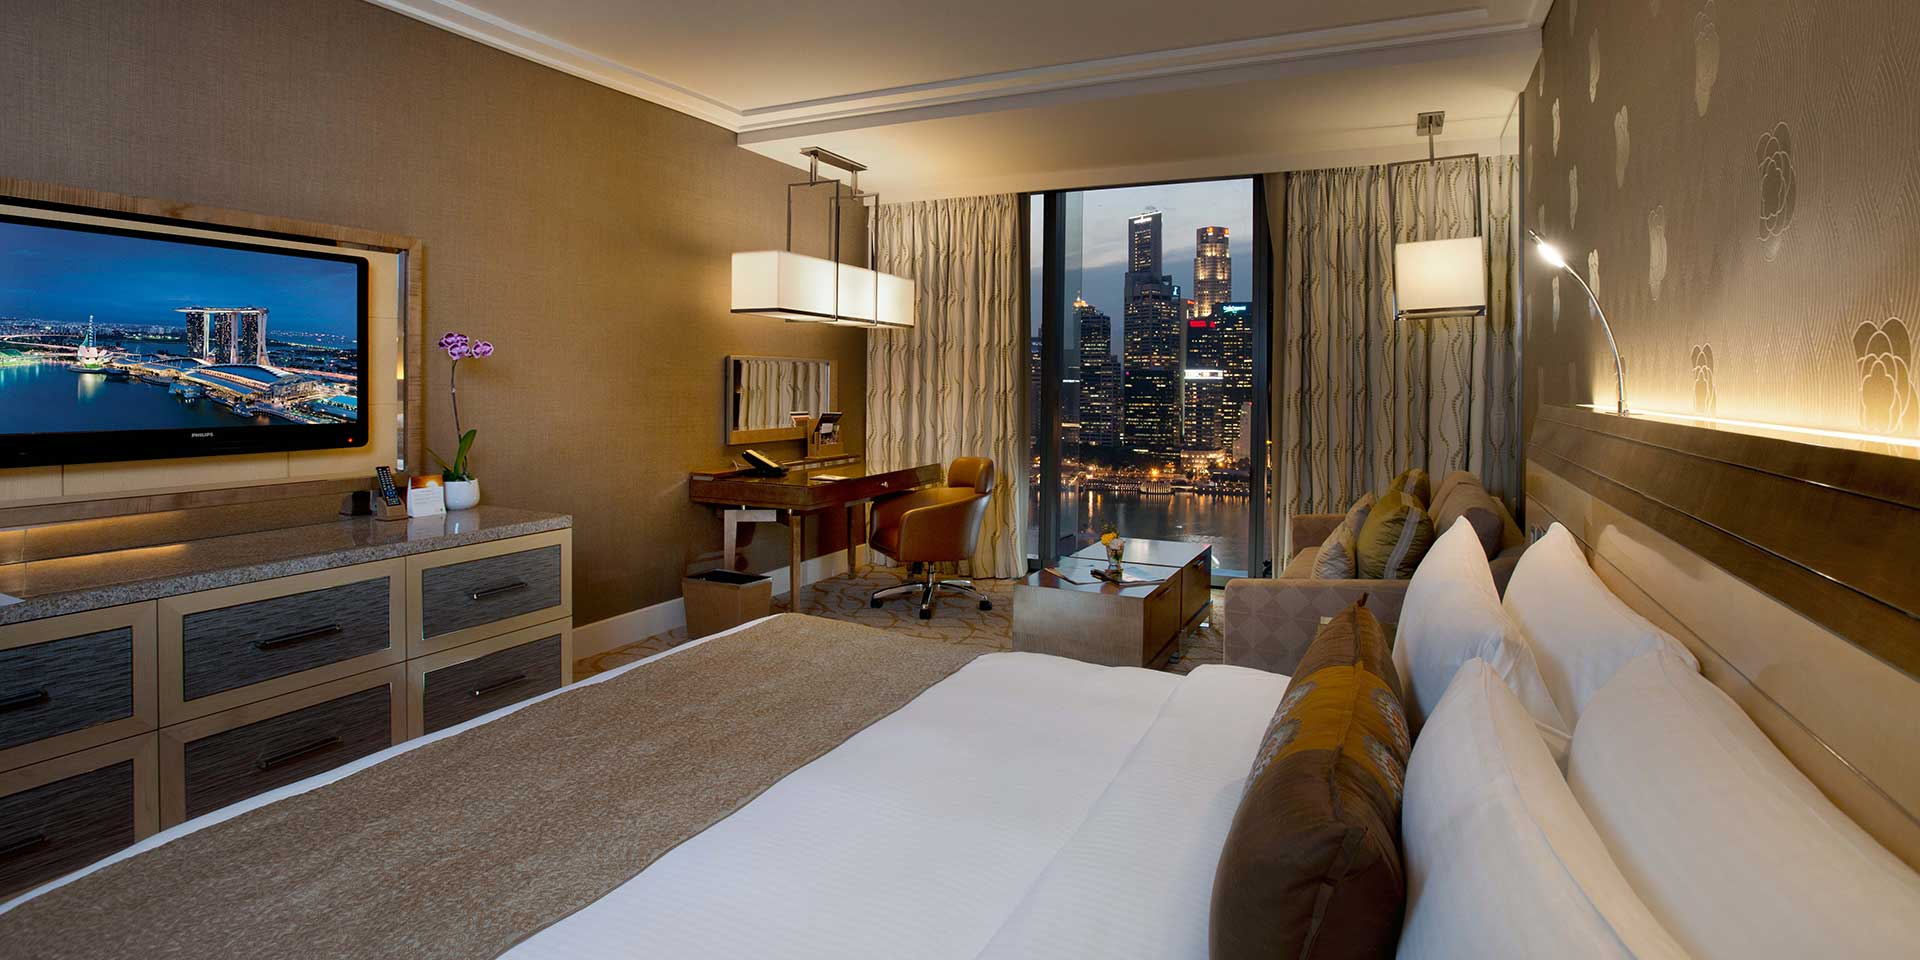 Deluxe Room at Marina Bay Sands with King Bed and City View